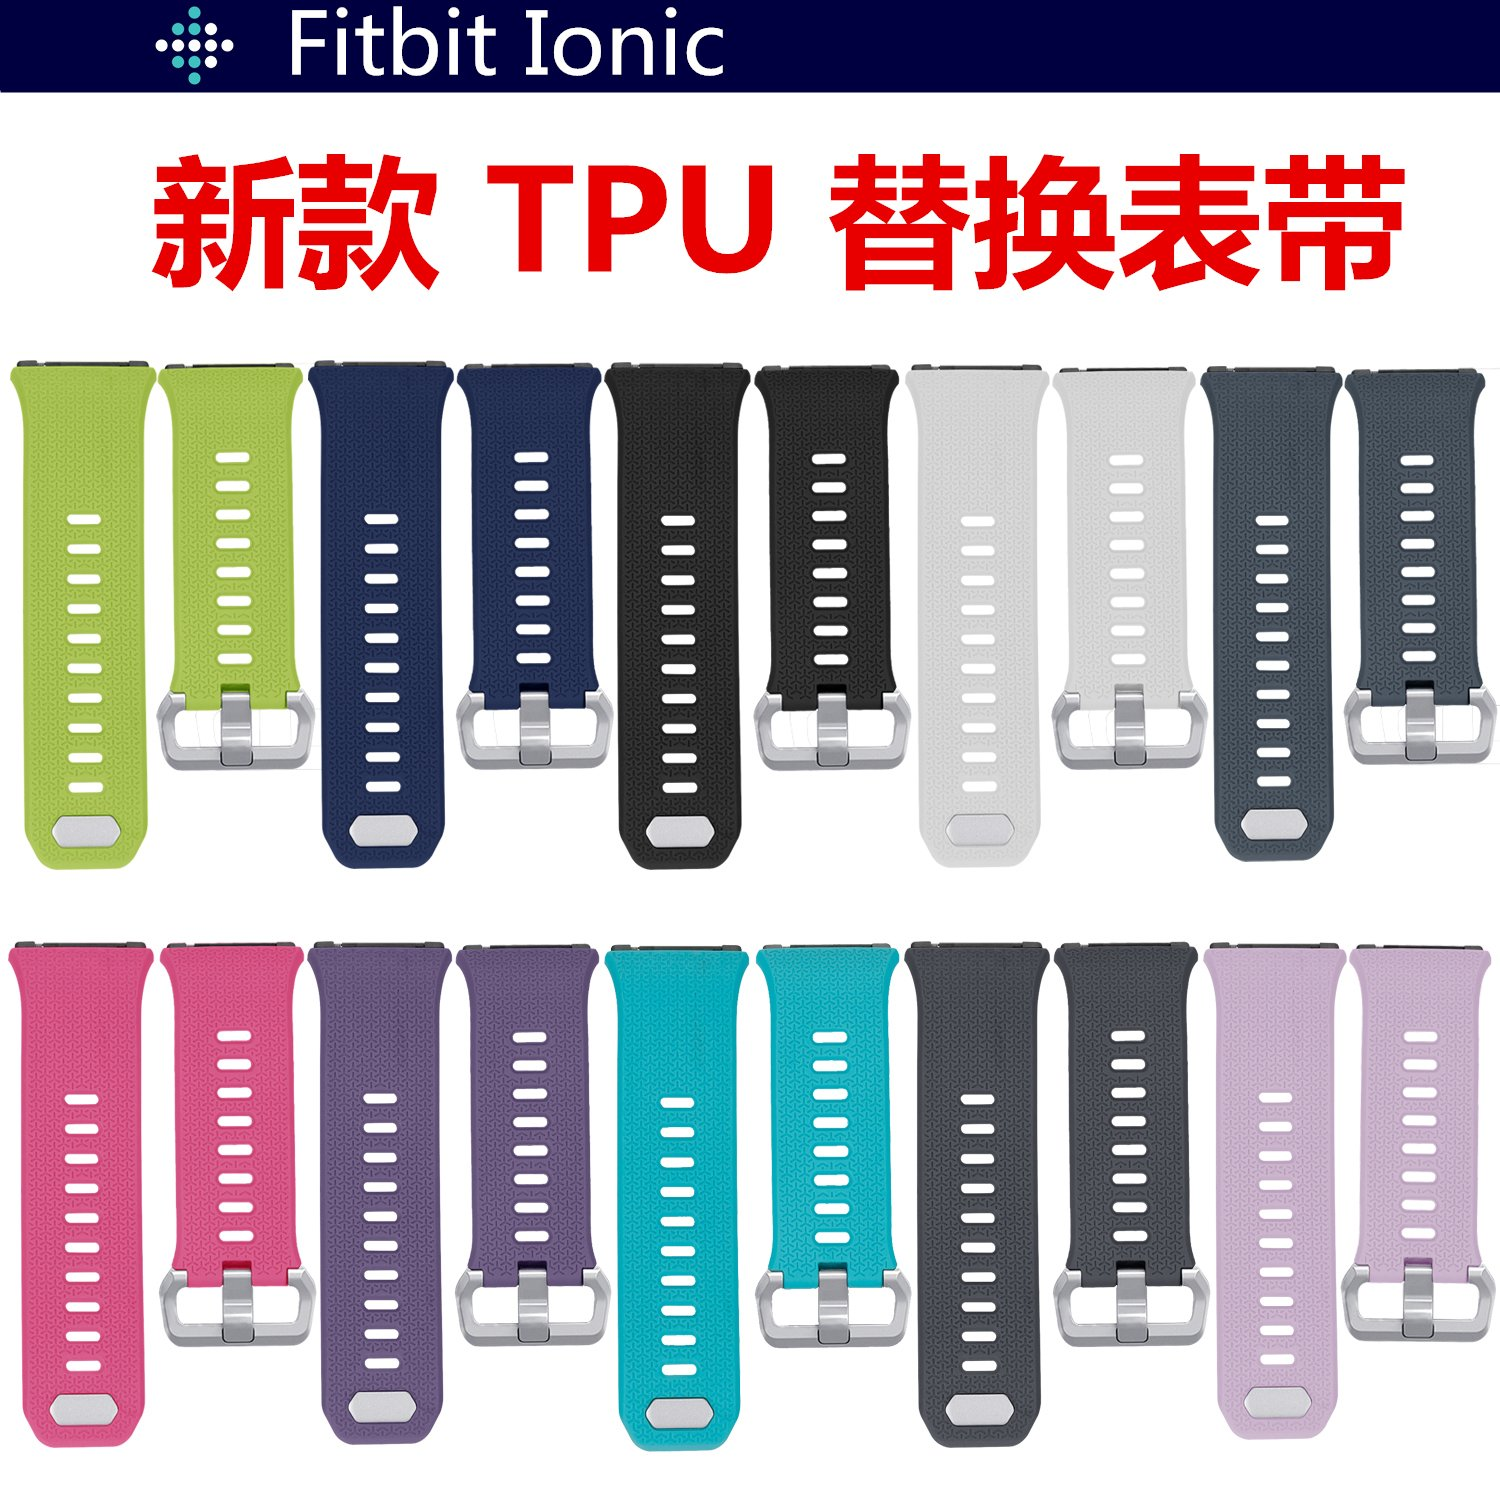 Fitbit Ionic smart watches Silicone Herringbone strap seat charger Charging cable